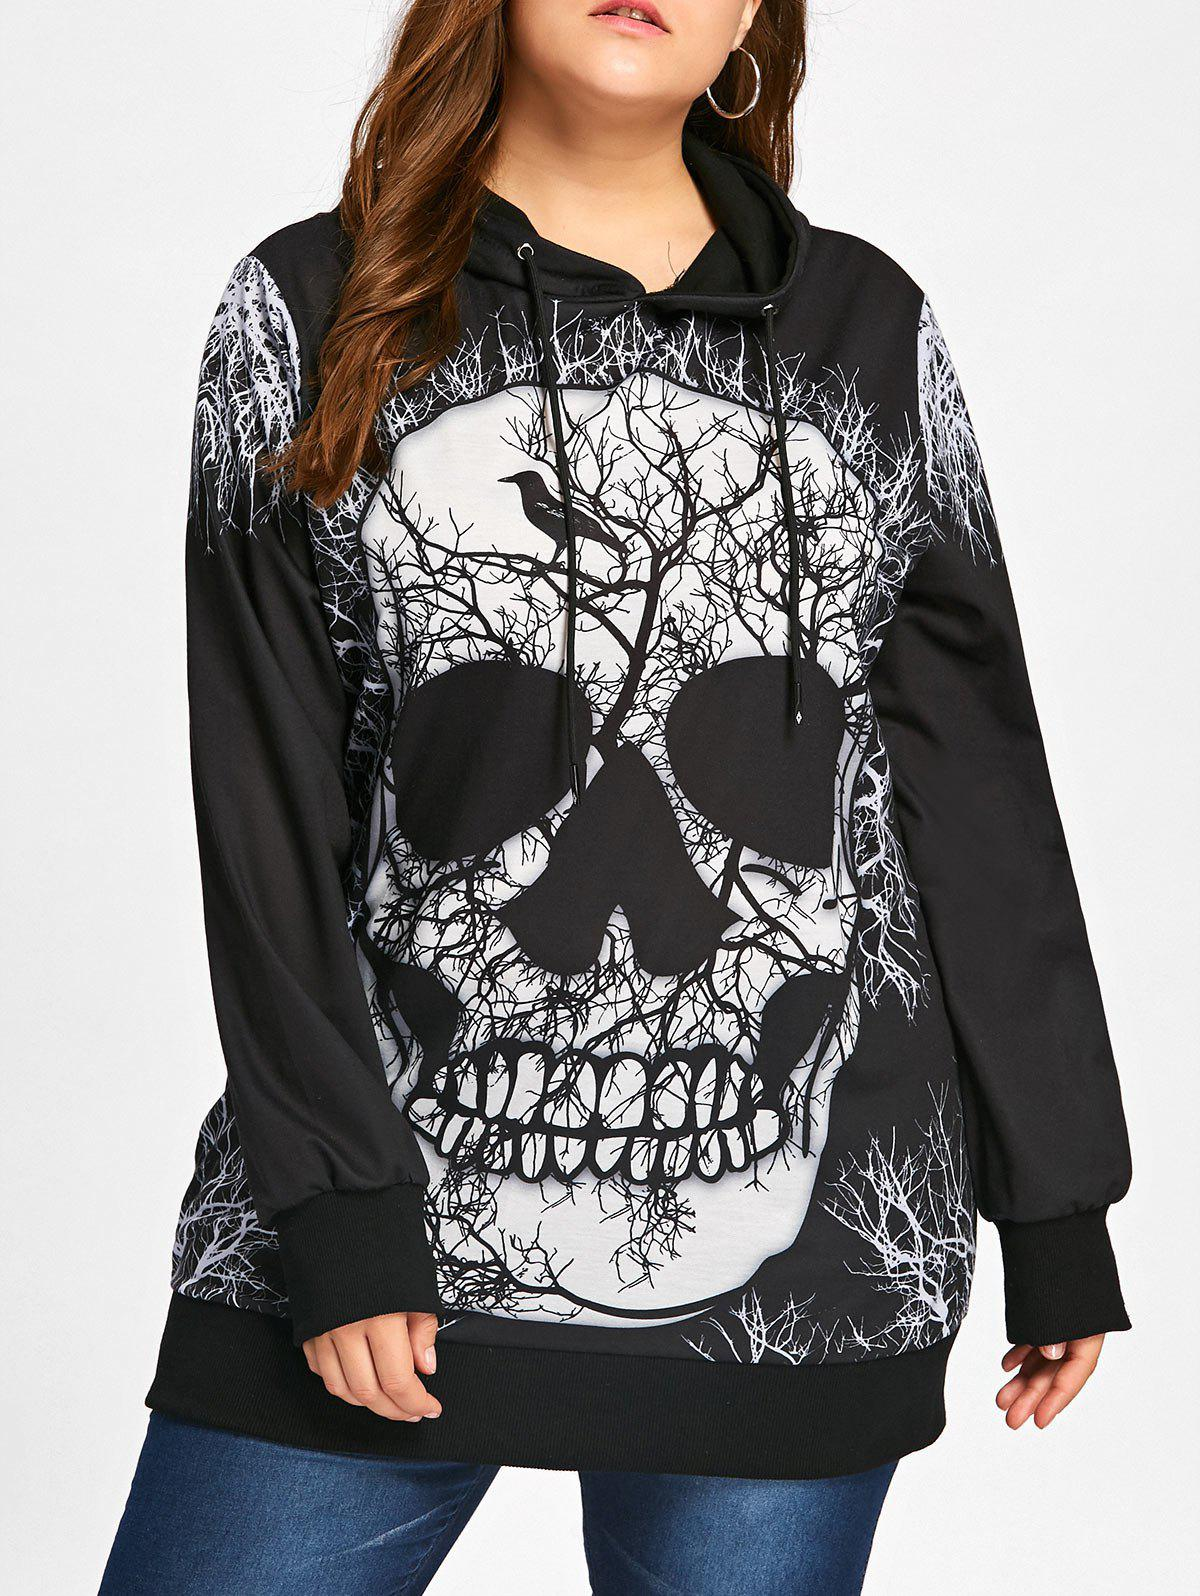 Skull Print Plus Size Halloween HoodieWOMEN<br><br>Size: 4XL; Color: BLACK; Material: Polyester,Spandex; Shirt Length: Regular; Sleeve Length: Full; Style: Fashion; Pattern Style: Character,Print; Season: Fall,Spring; Weight: 0.4500kg; Package Contents: 1 x Hoodie;